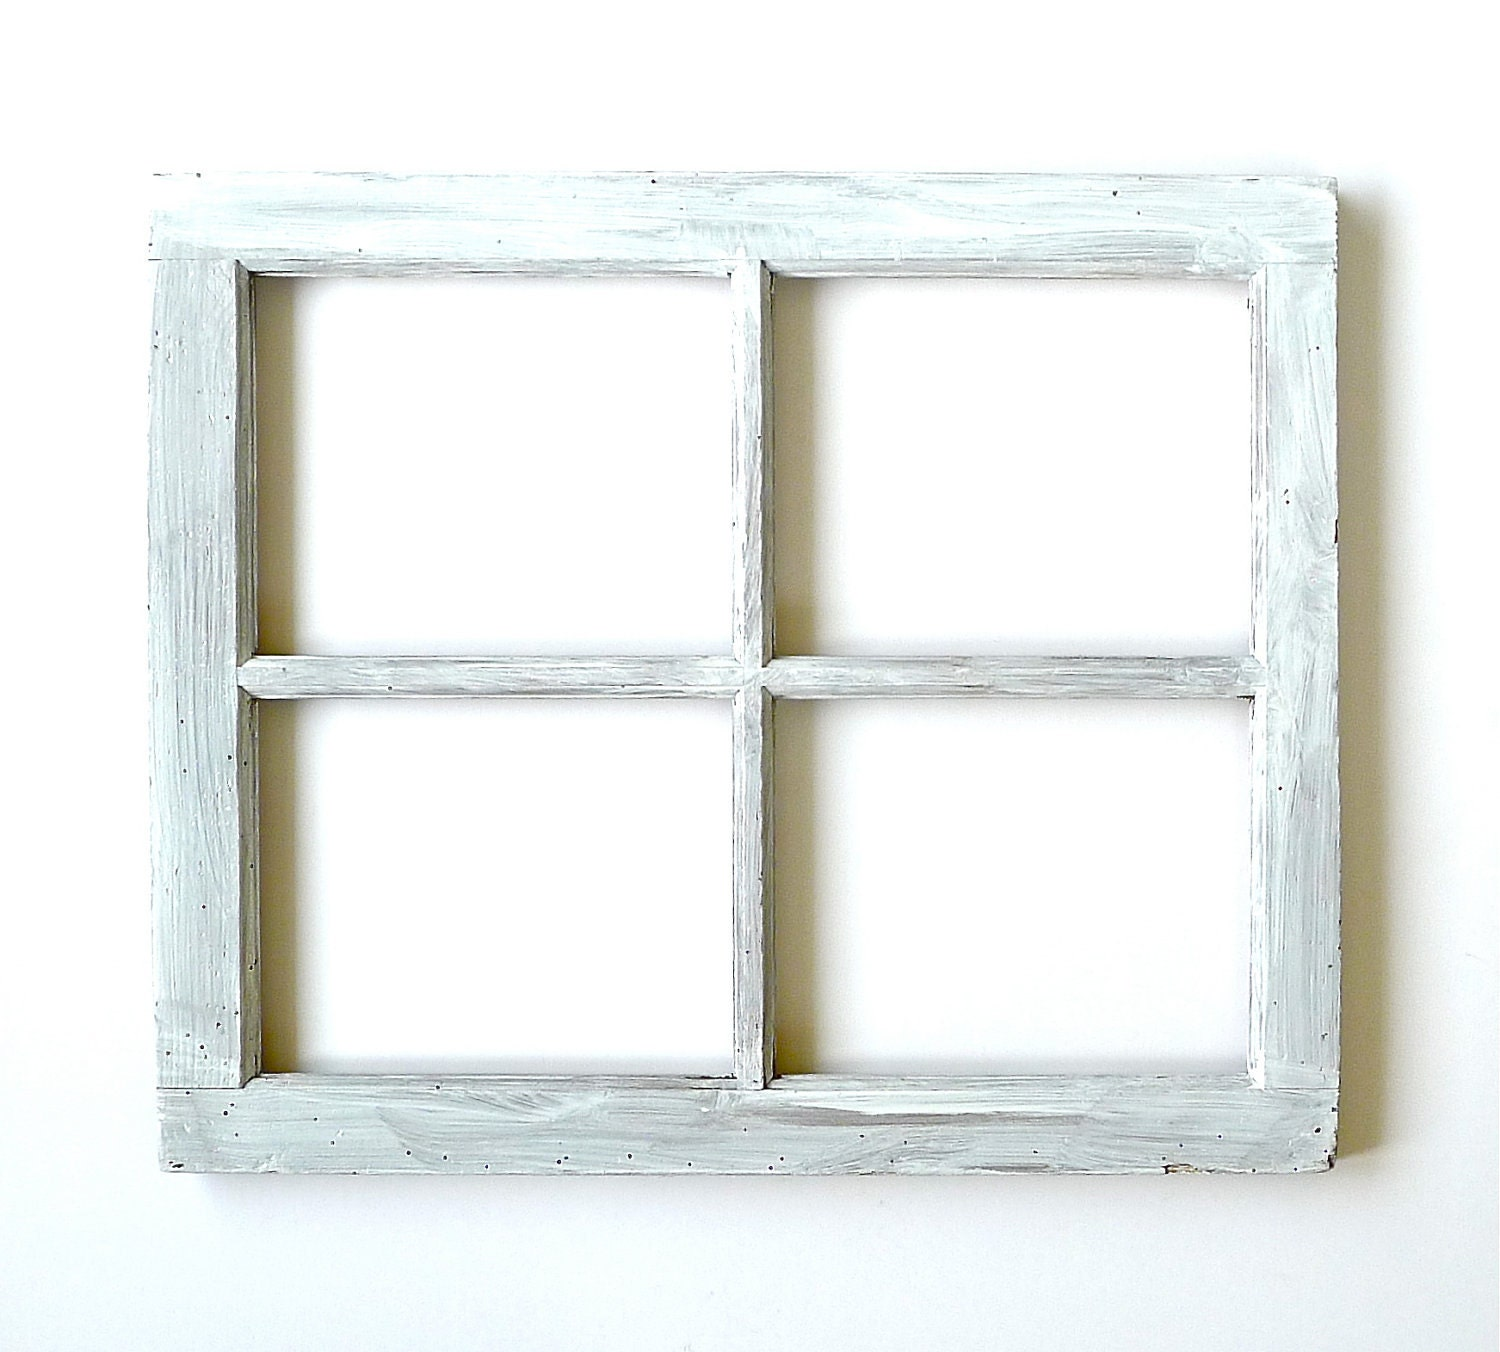 Window frame window pane photo frame for Wooden windows